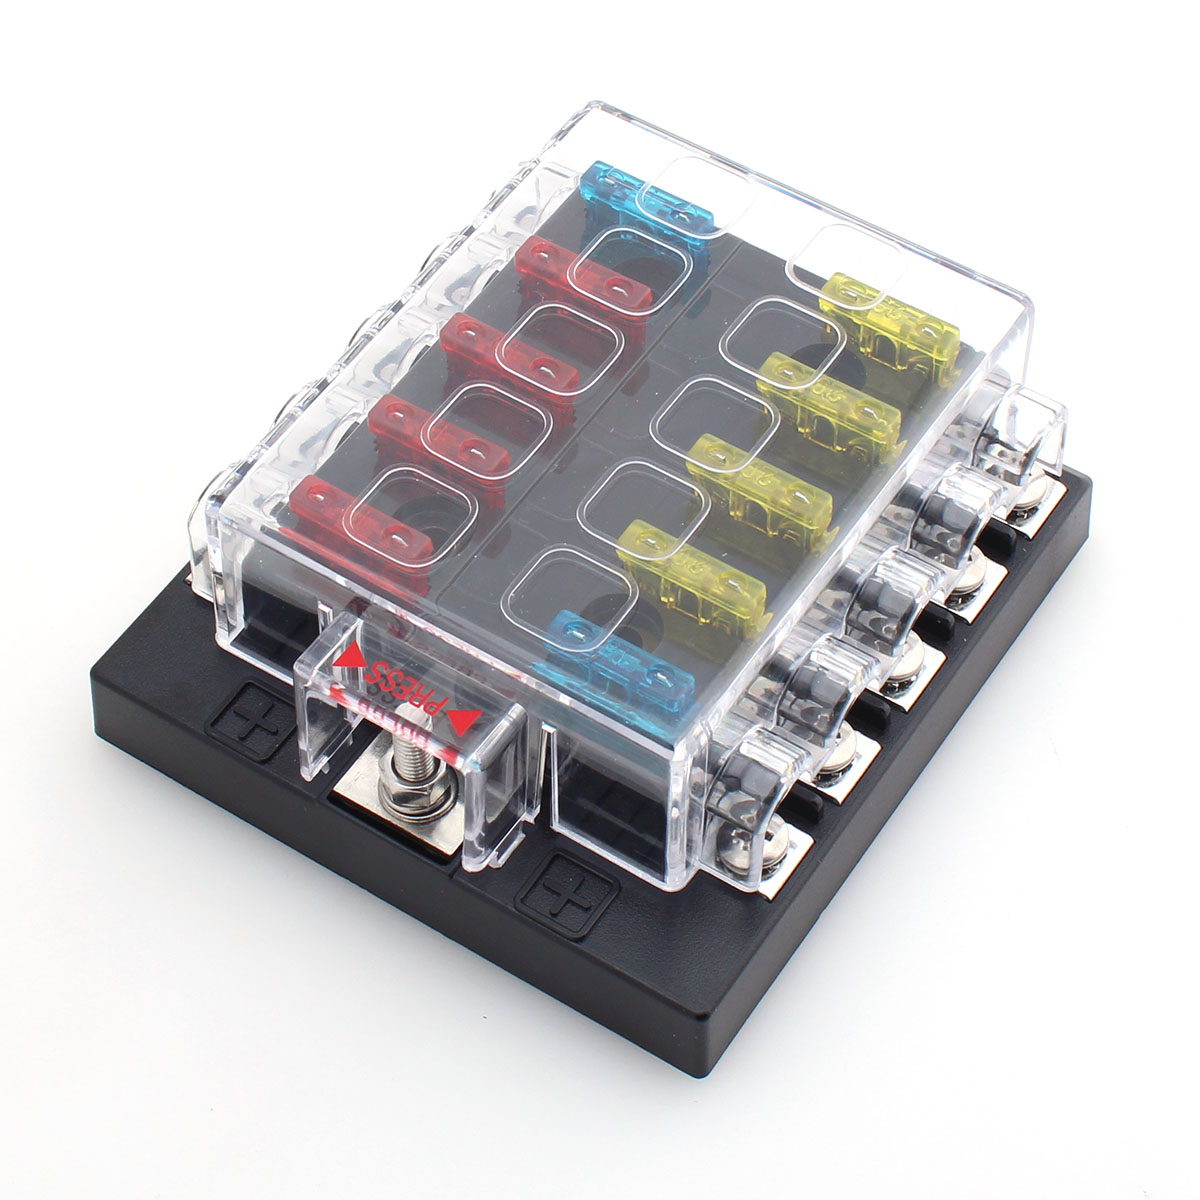 Fuse Box Bar Kit Wiring Library Motorcycle Holder 10 Way 24v 12v Blade Bus New Ato Atc Car